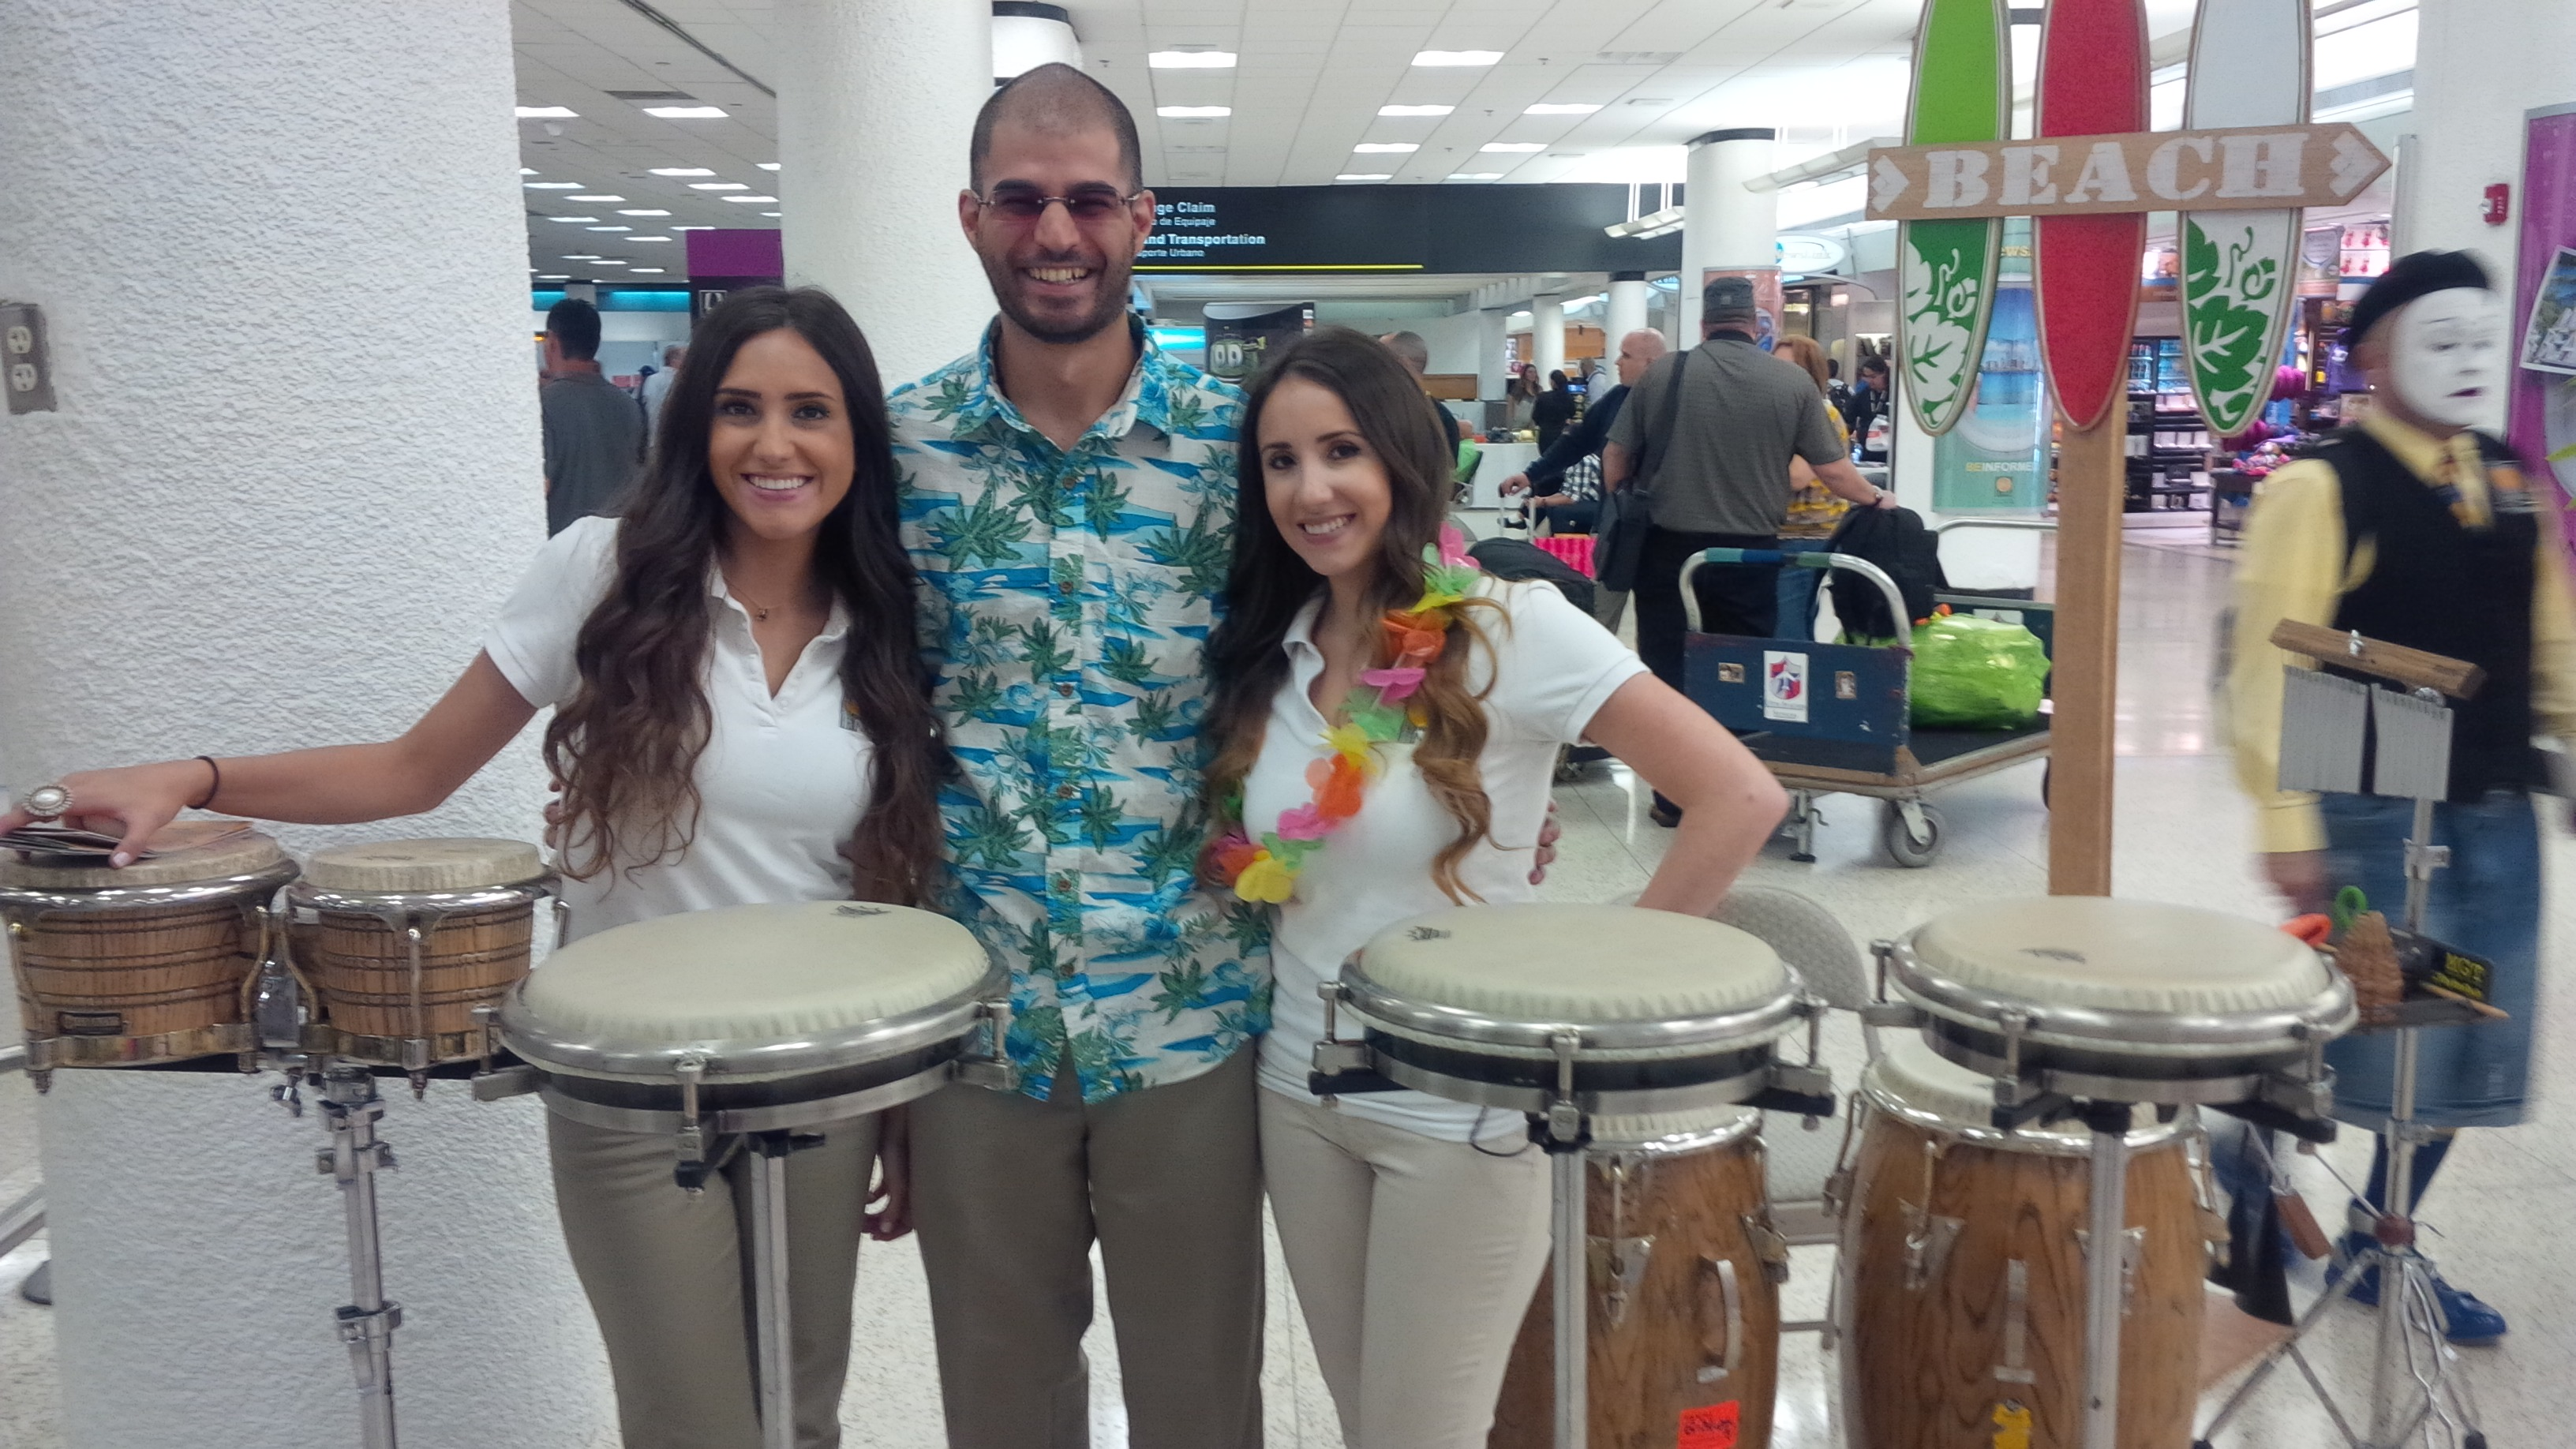 Miami International Airport Promo